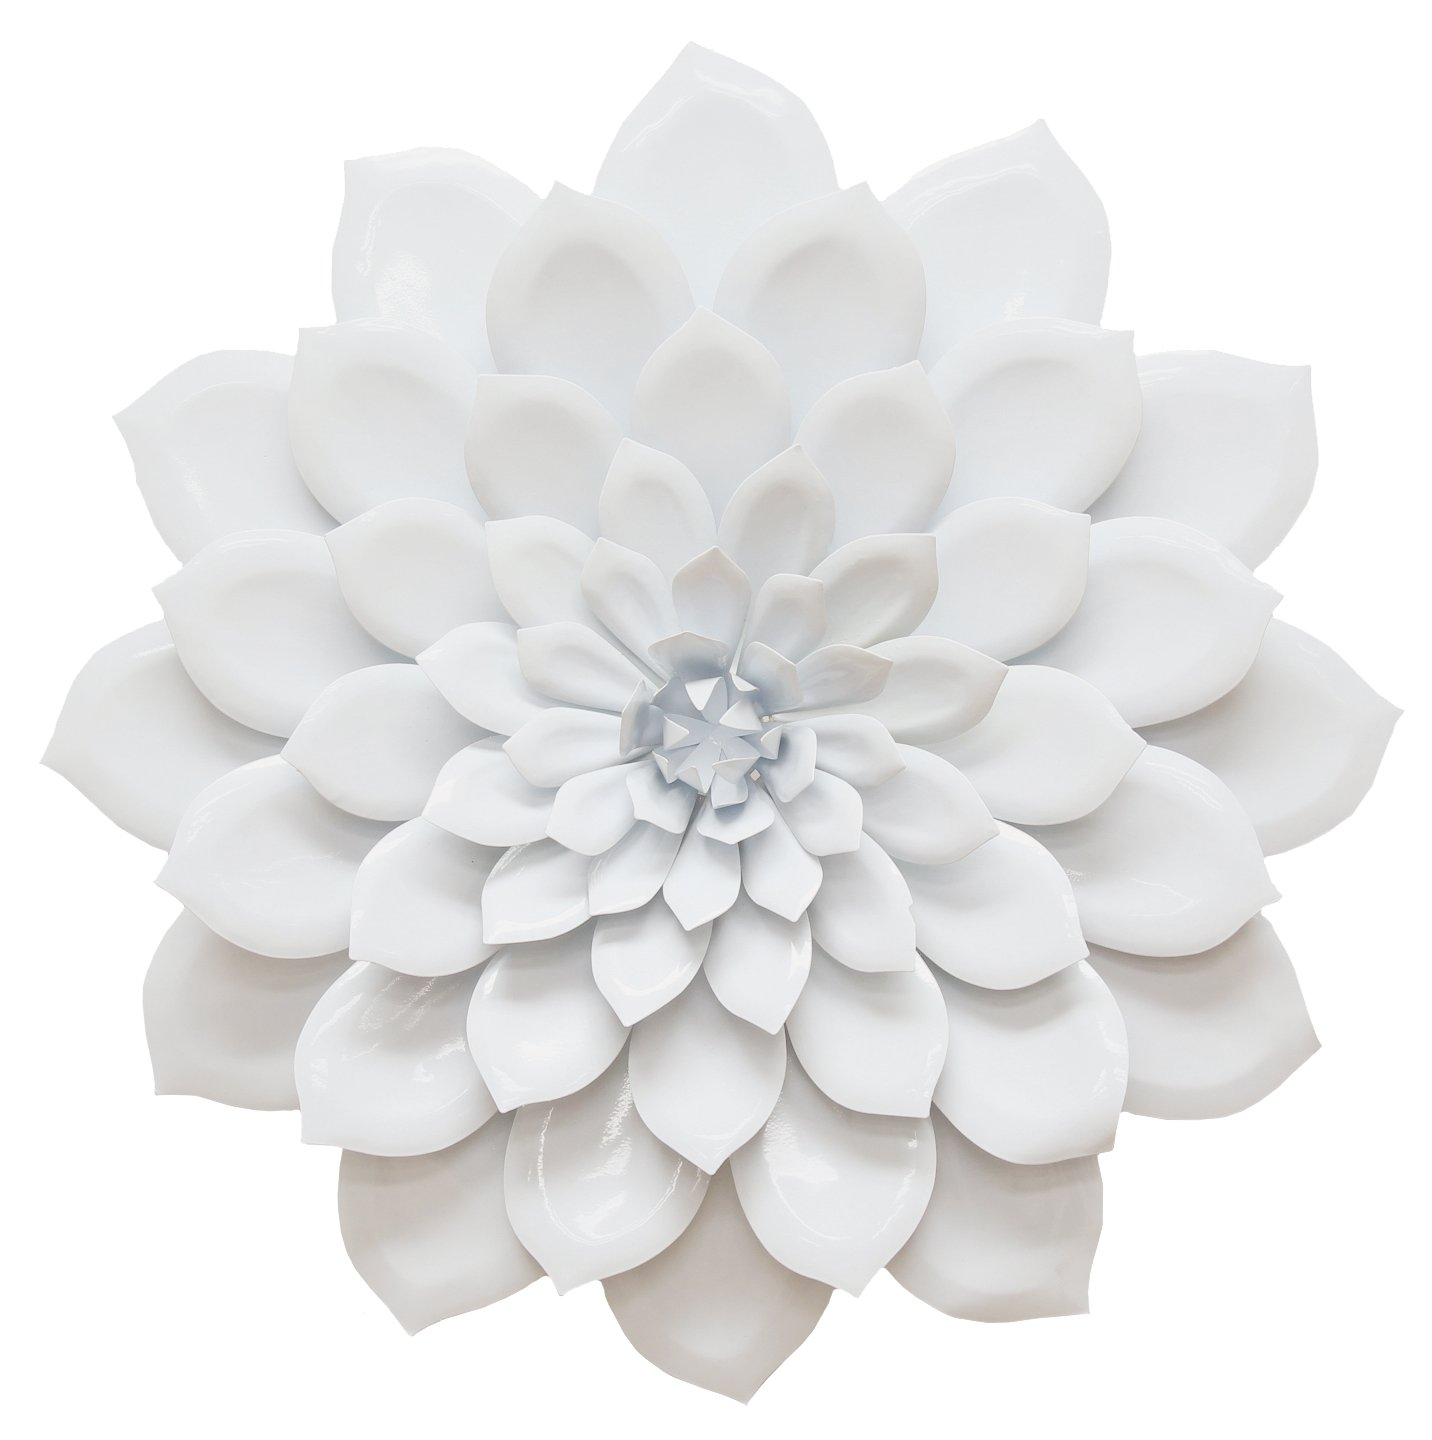 Stratton Home Decor SHD0018 Layered Flower Wall Decor